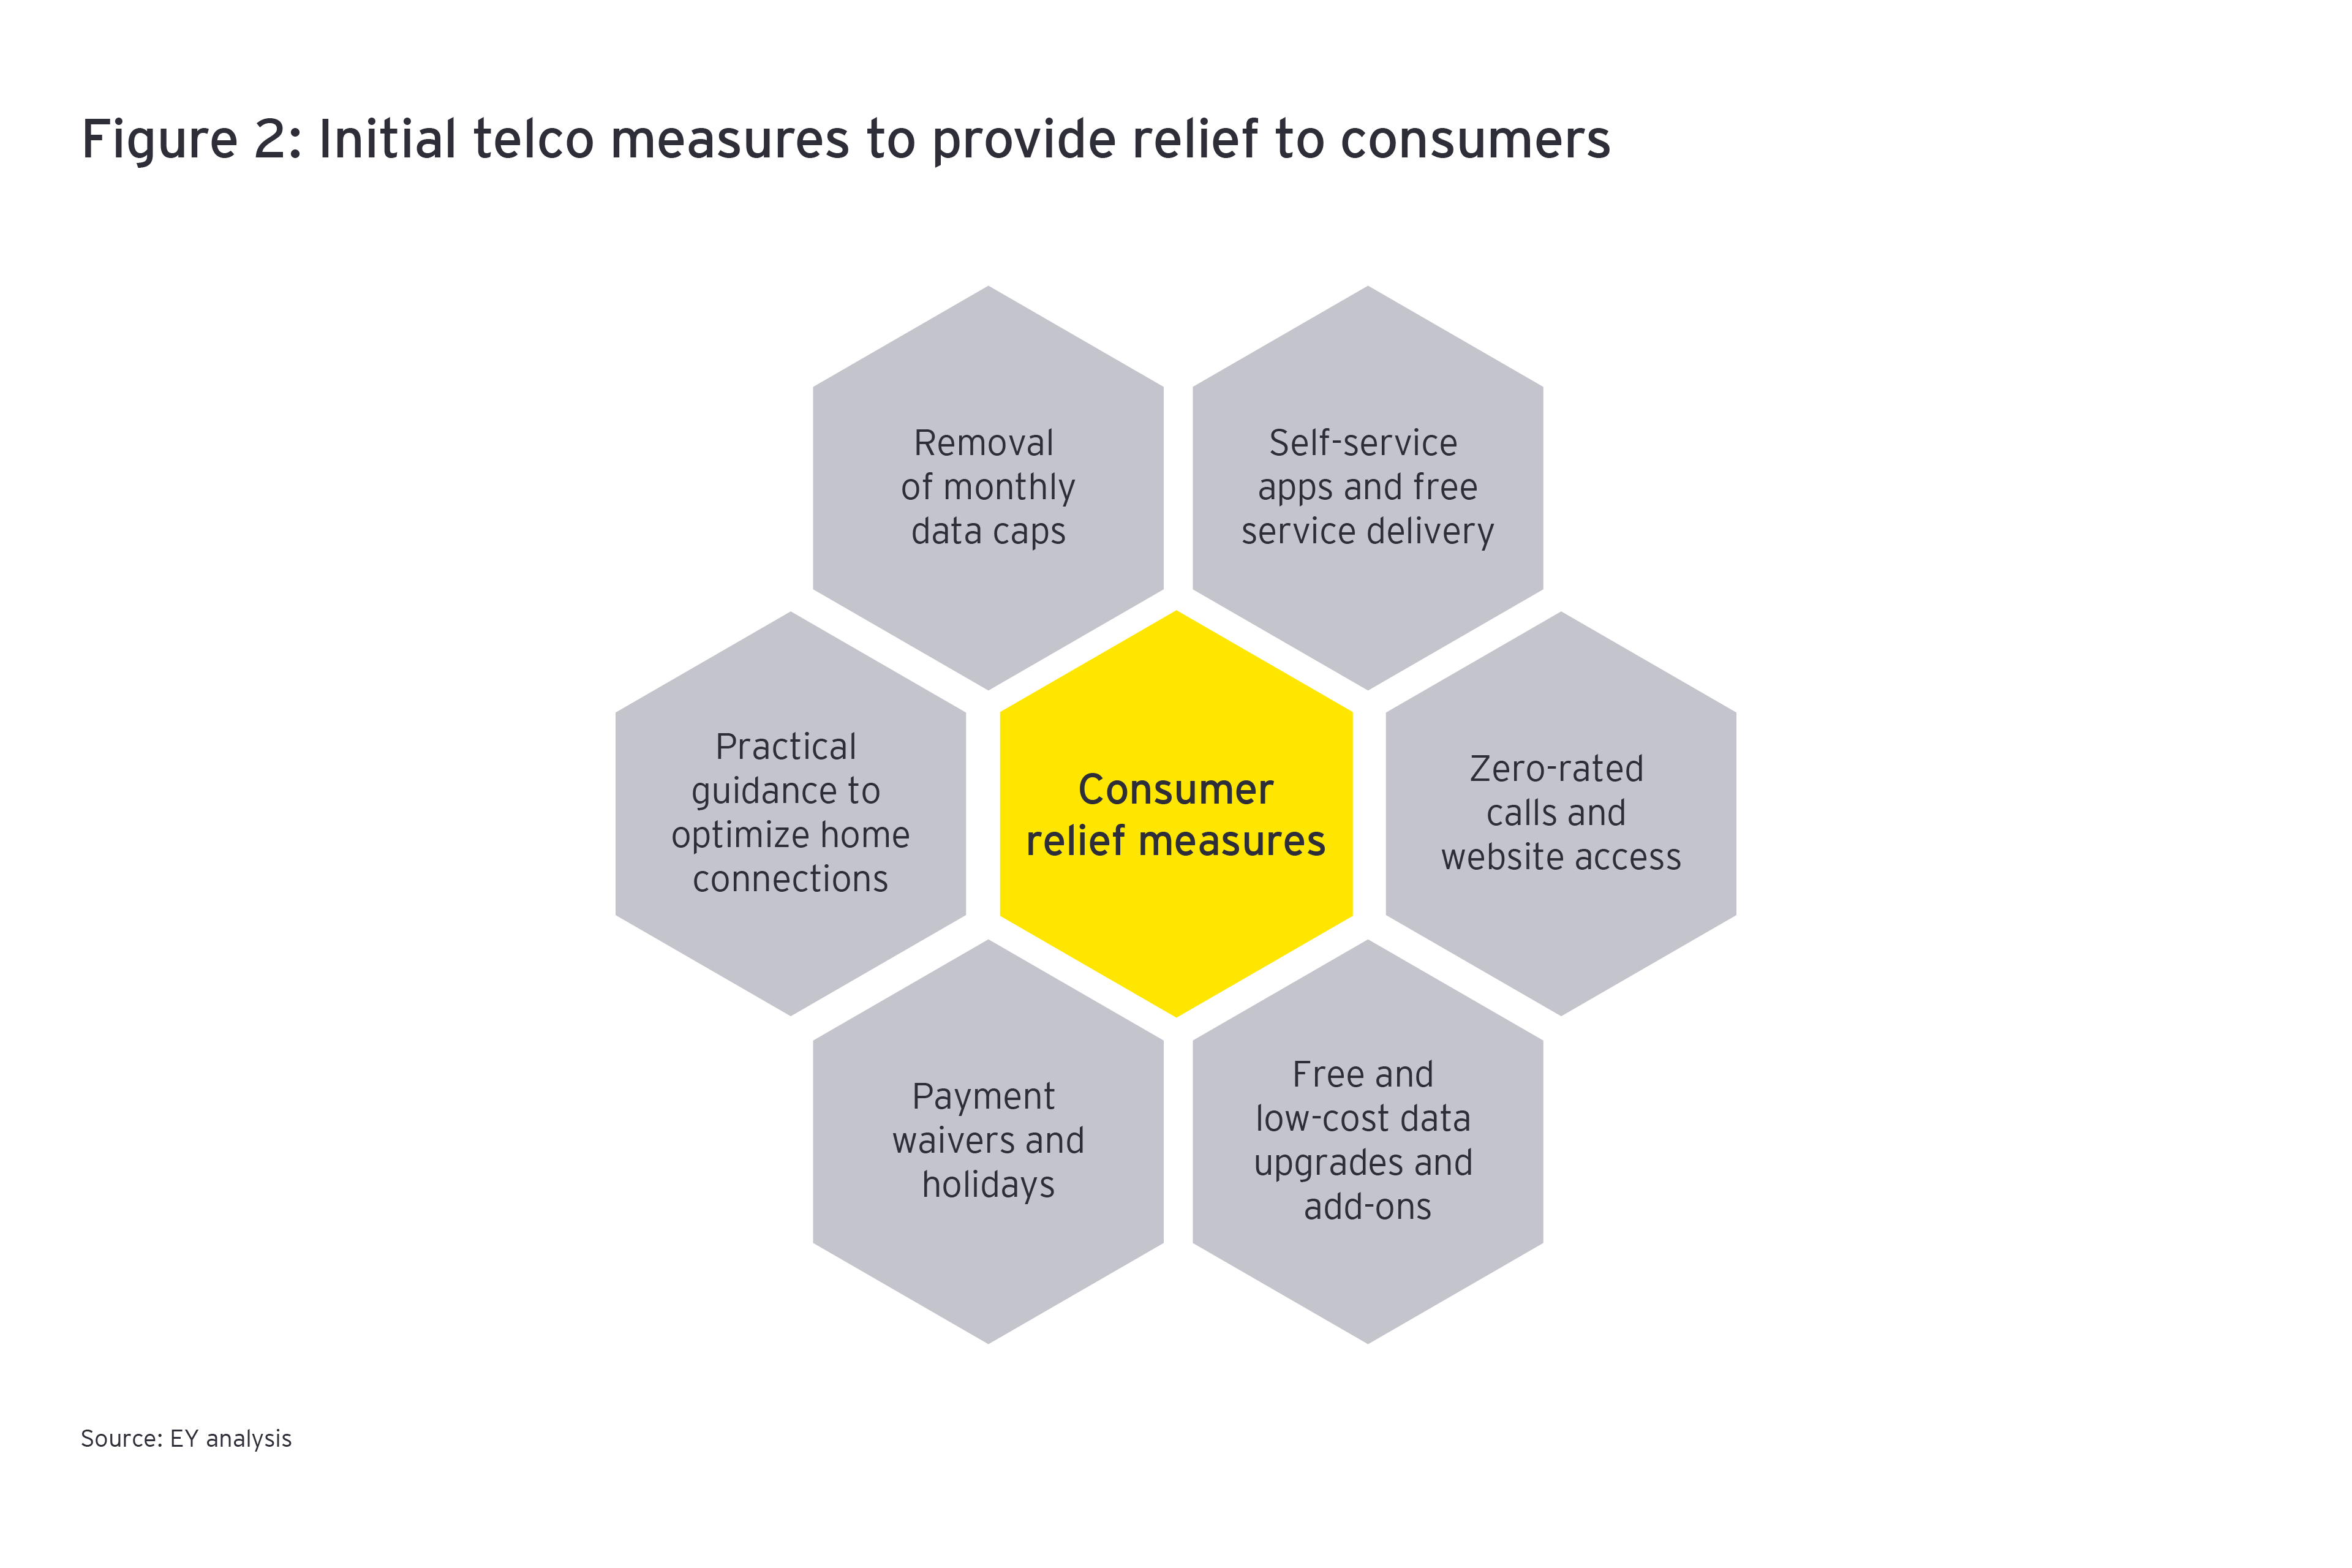 Initial telco measures to provide relief to consumers